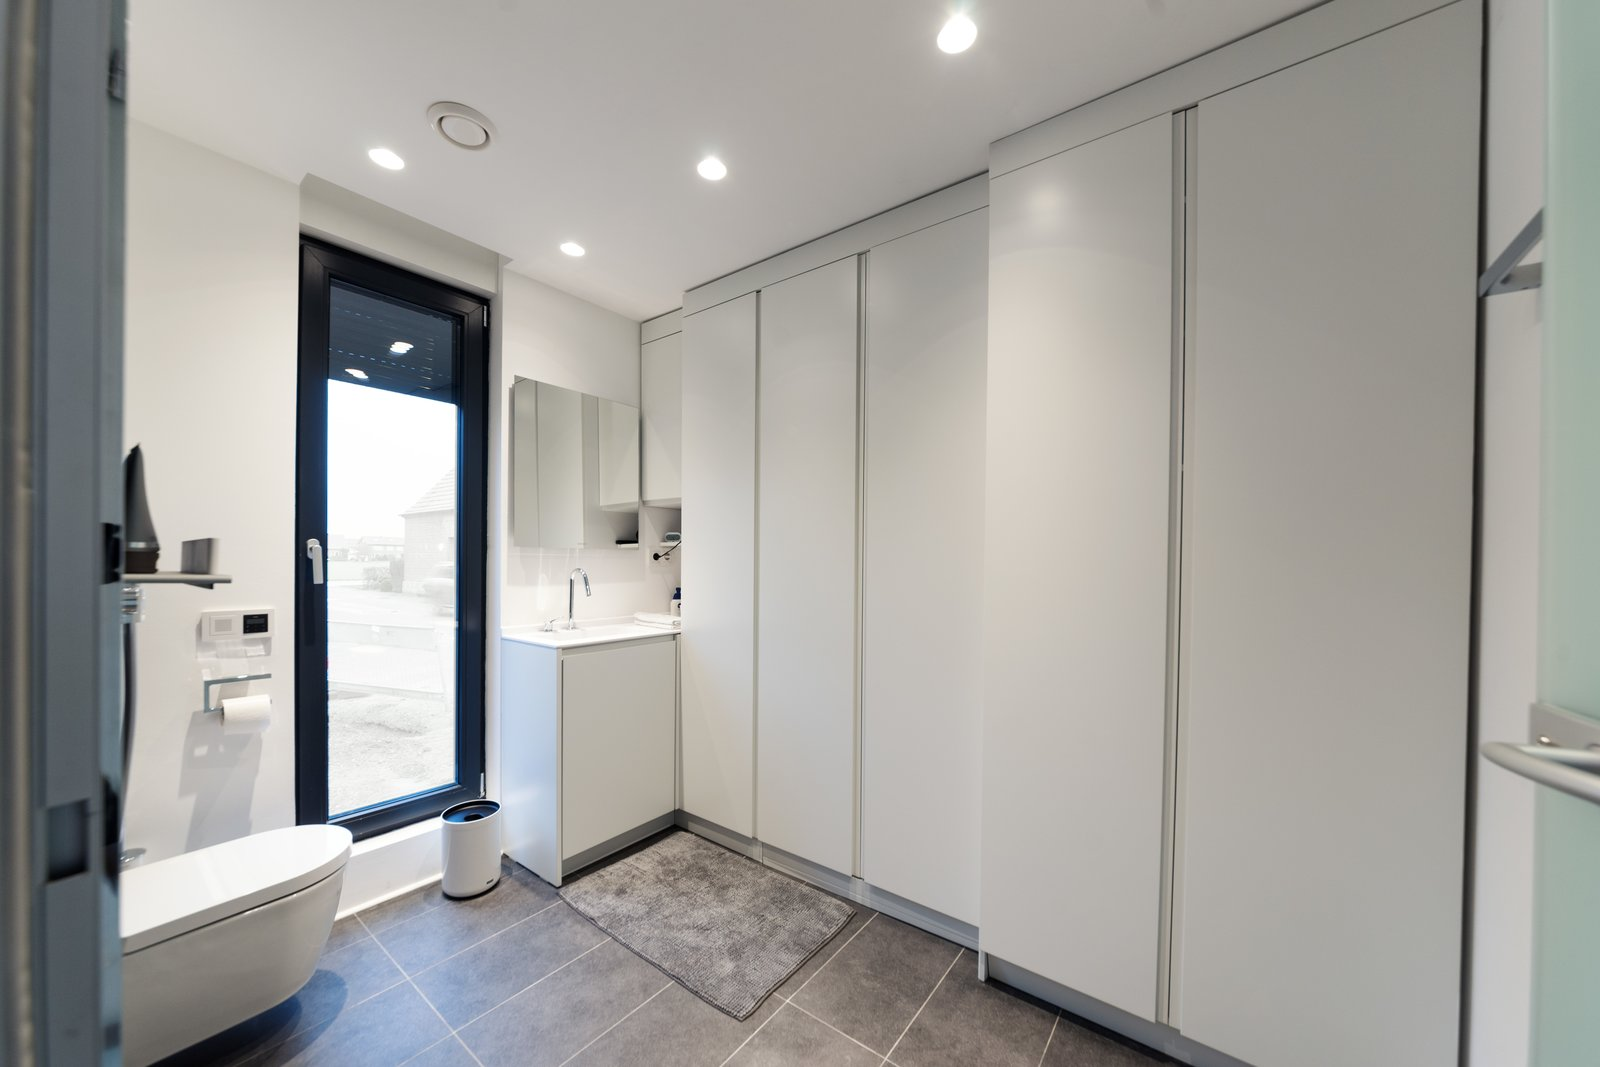 Bath Room, Recessed Lighting, One Piece Toilet, Drop In Sink, and Rug Floor Coodo 64's bathroom has built-in storage.  Photo 6 of 12 in Meet the Prefab Unit That's Smart, Mobile, and Sustainable